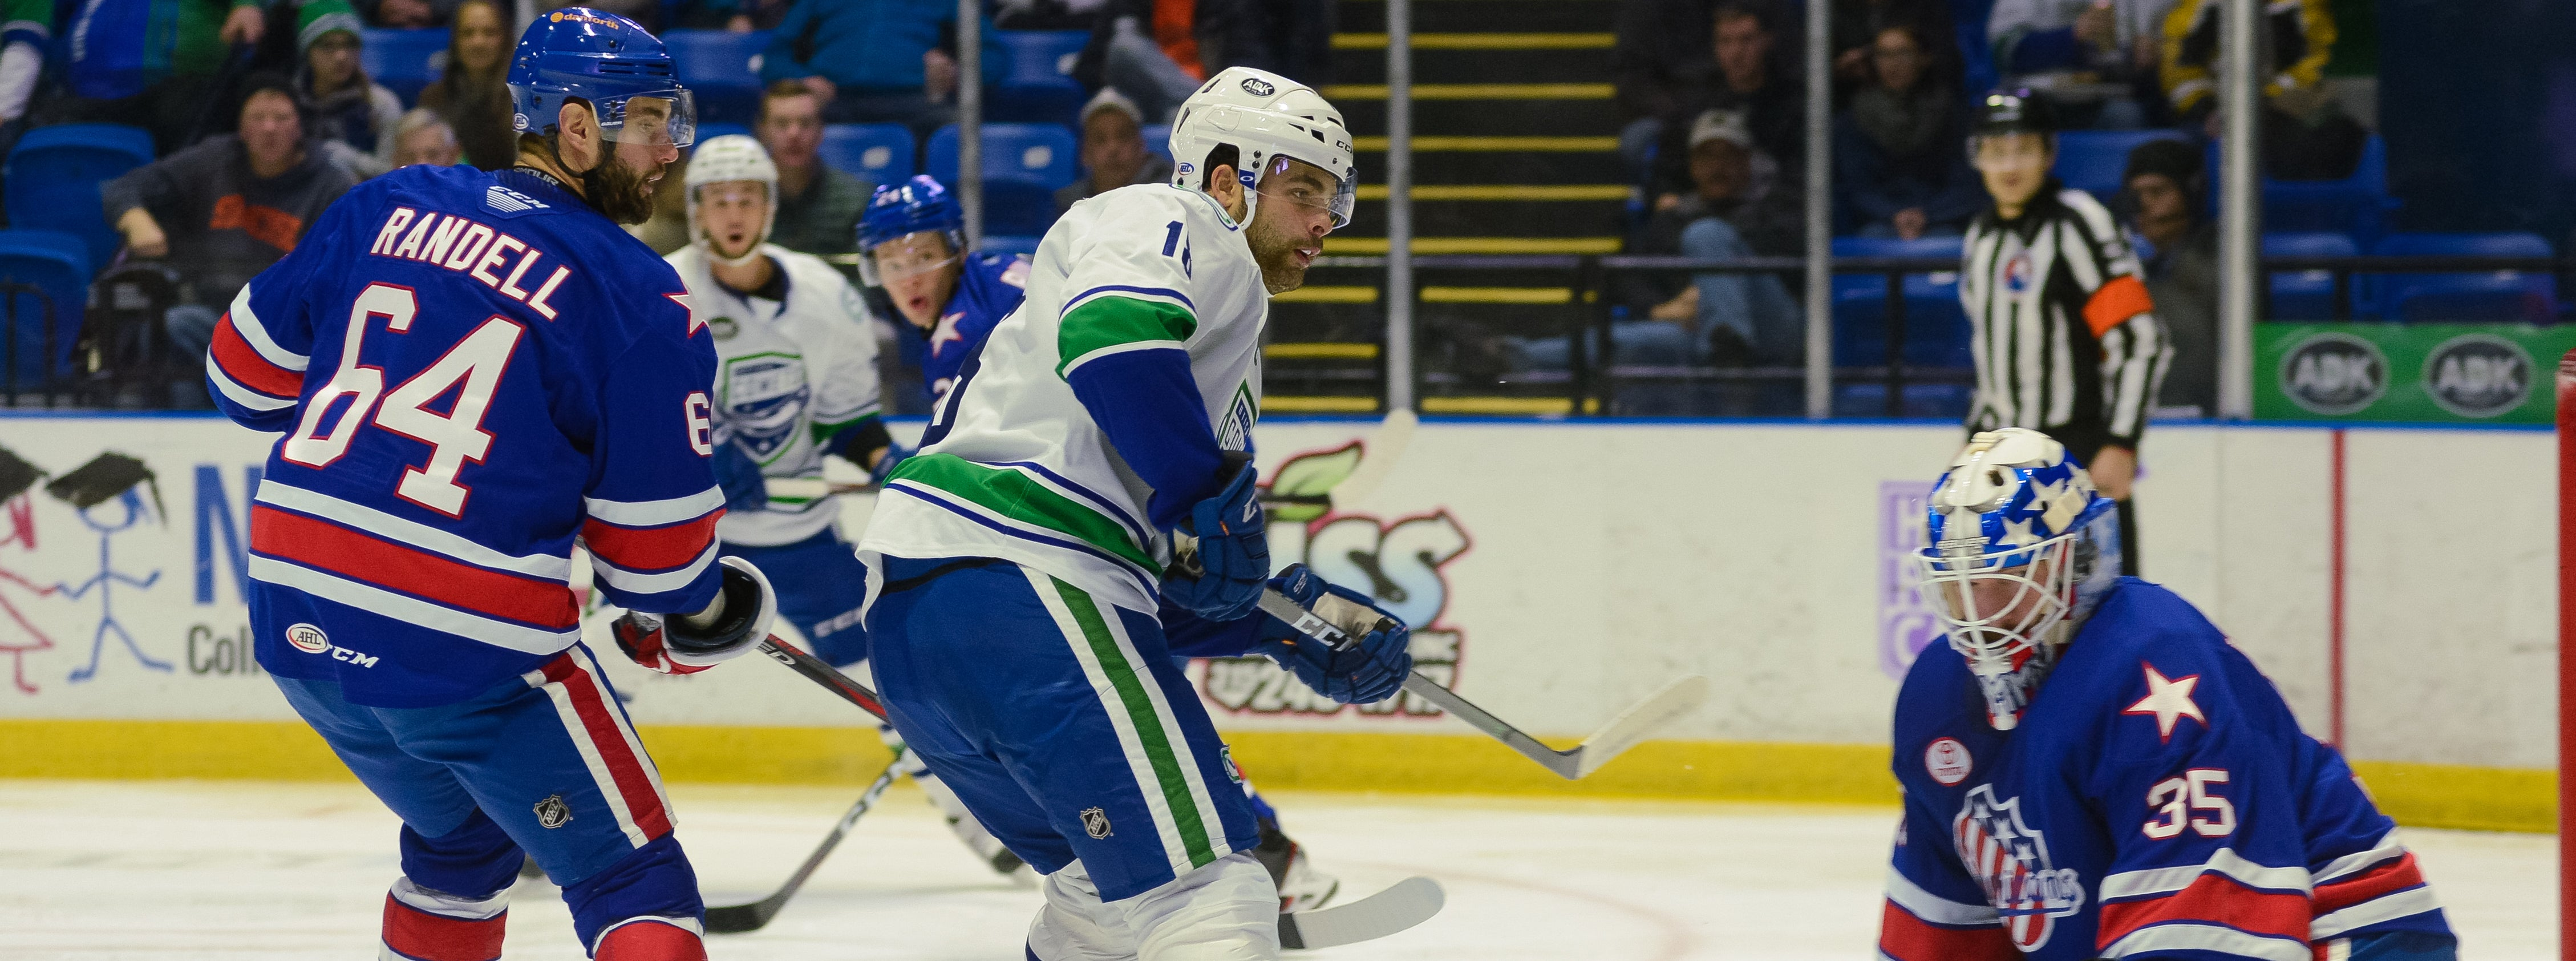 COMETS BATTLE DIVISION LEADING AMERKS